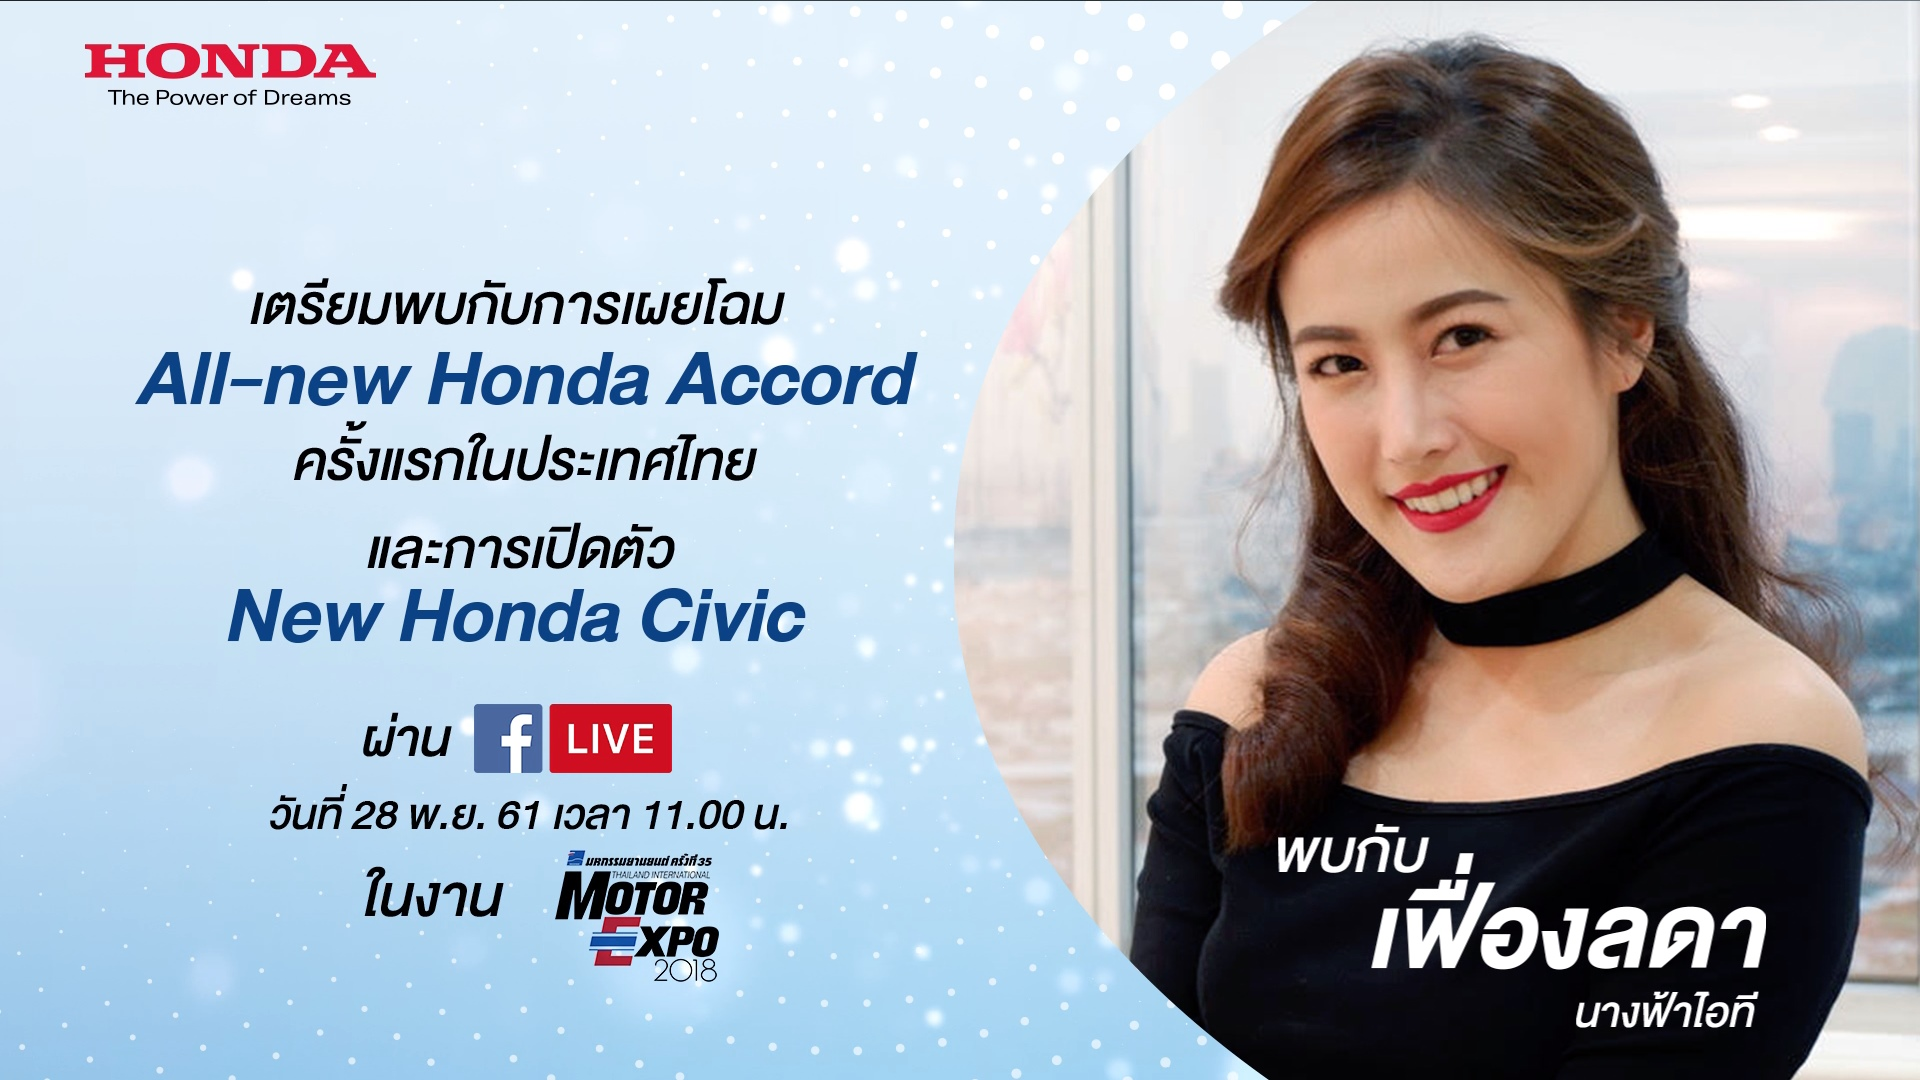 ชมย้อนหลัง Honda Press Conference - Motor Expo 2018